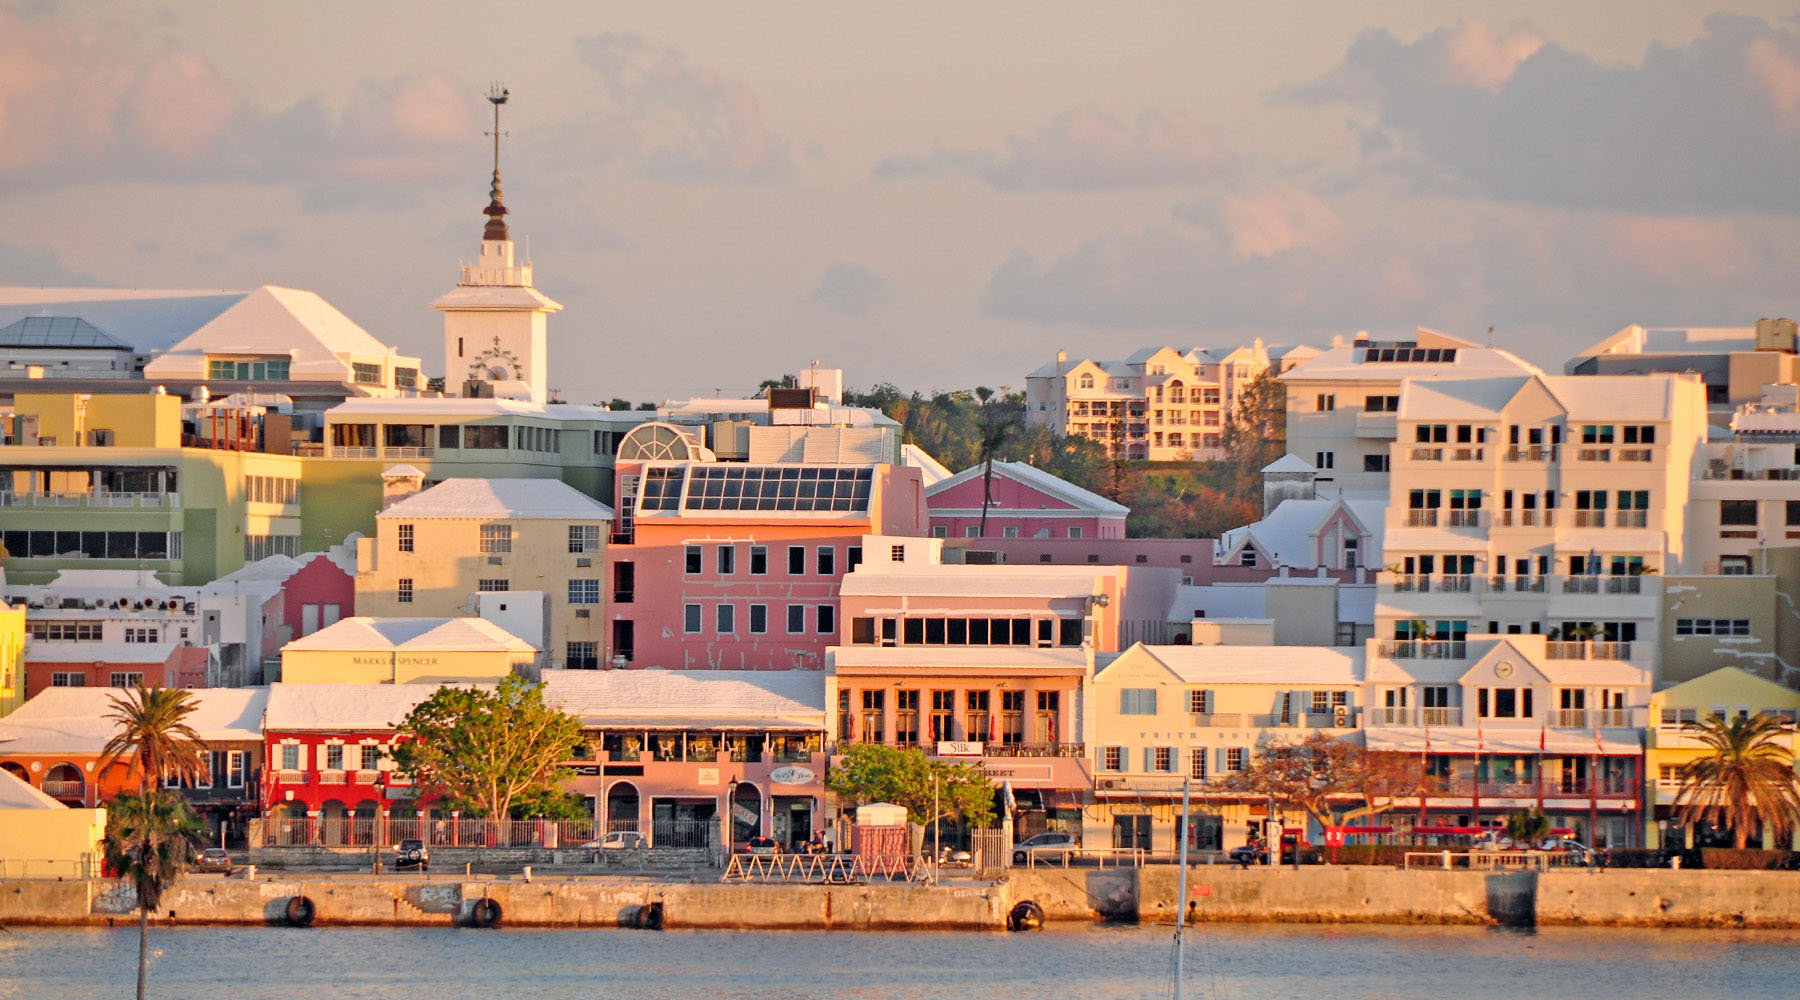 11-NIGHT BERMUDA AND THE OLD SOUTH